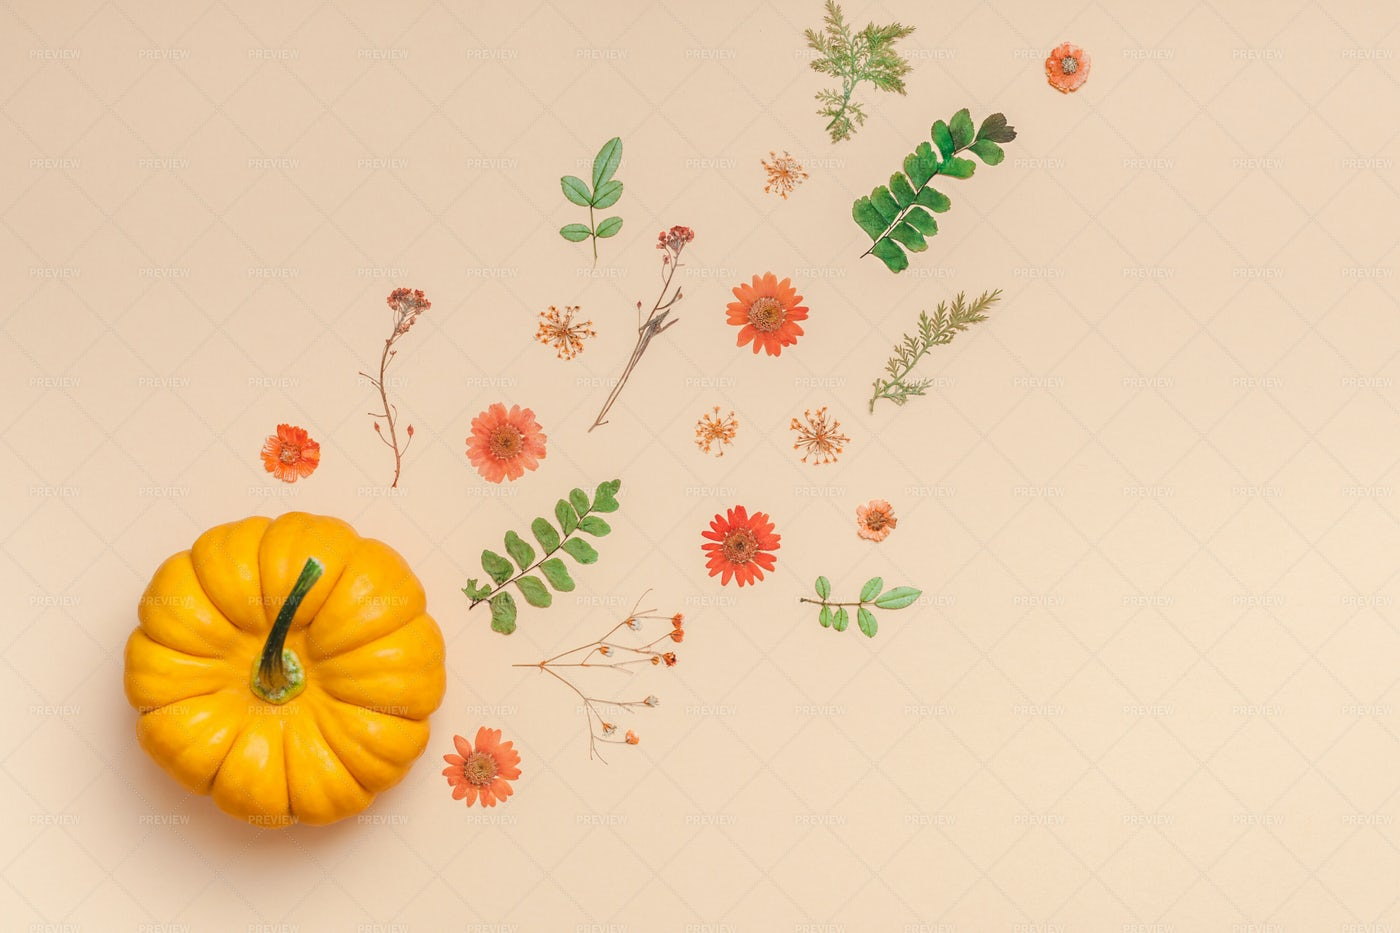 Pumpkin And Dry Flowers: Stock Photos